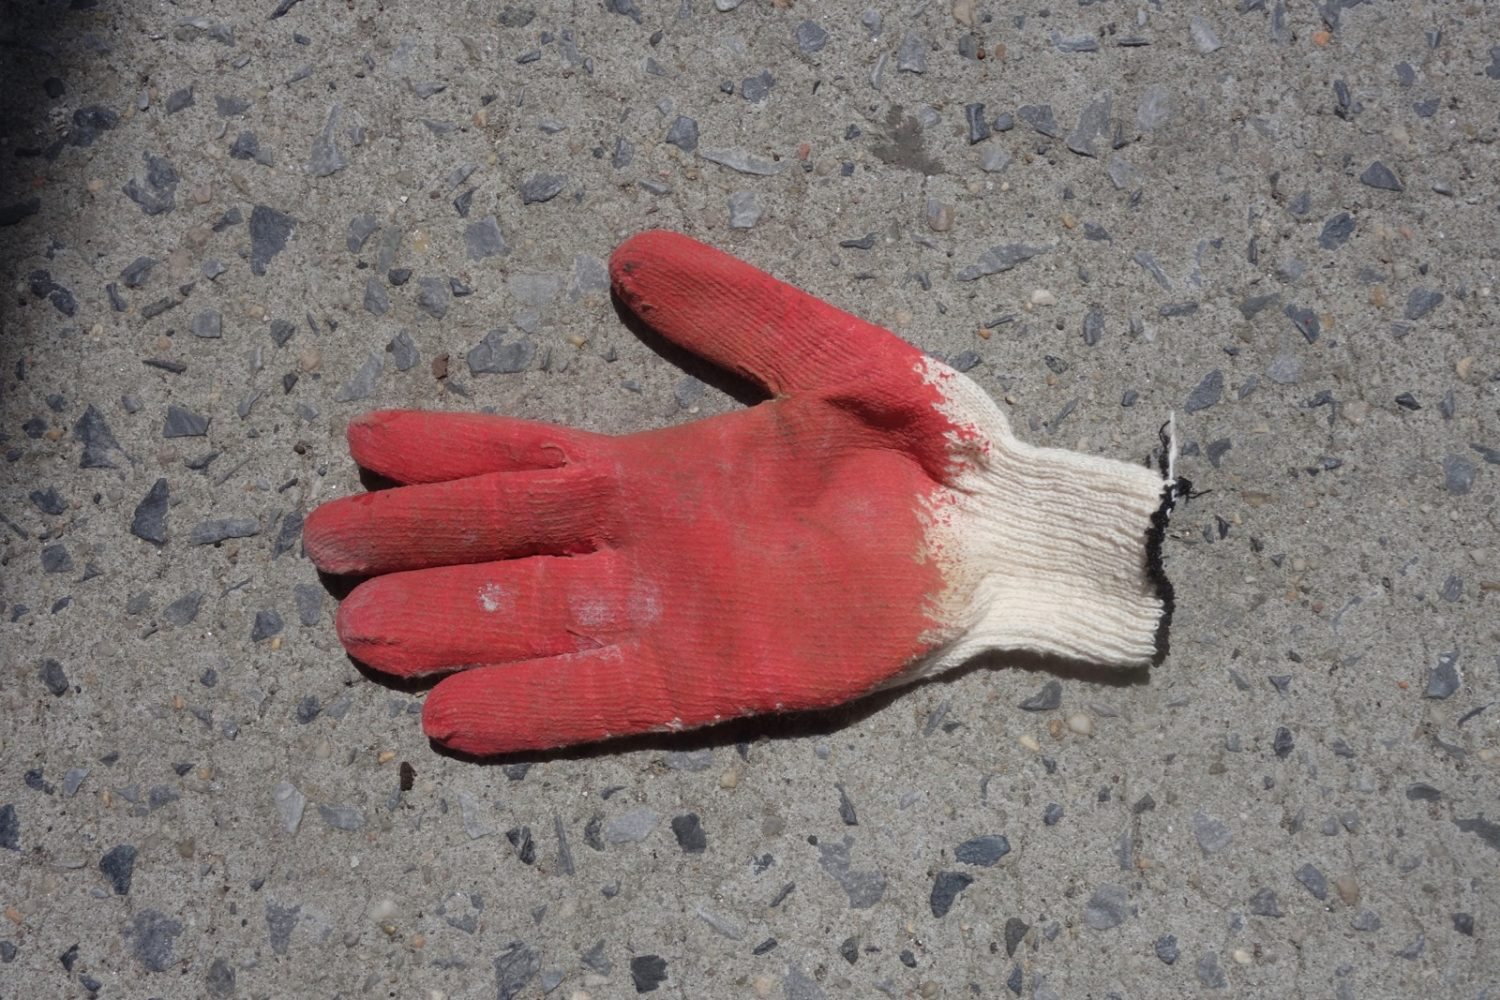 Red glove on the street in lower Manhattan